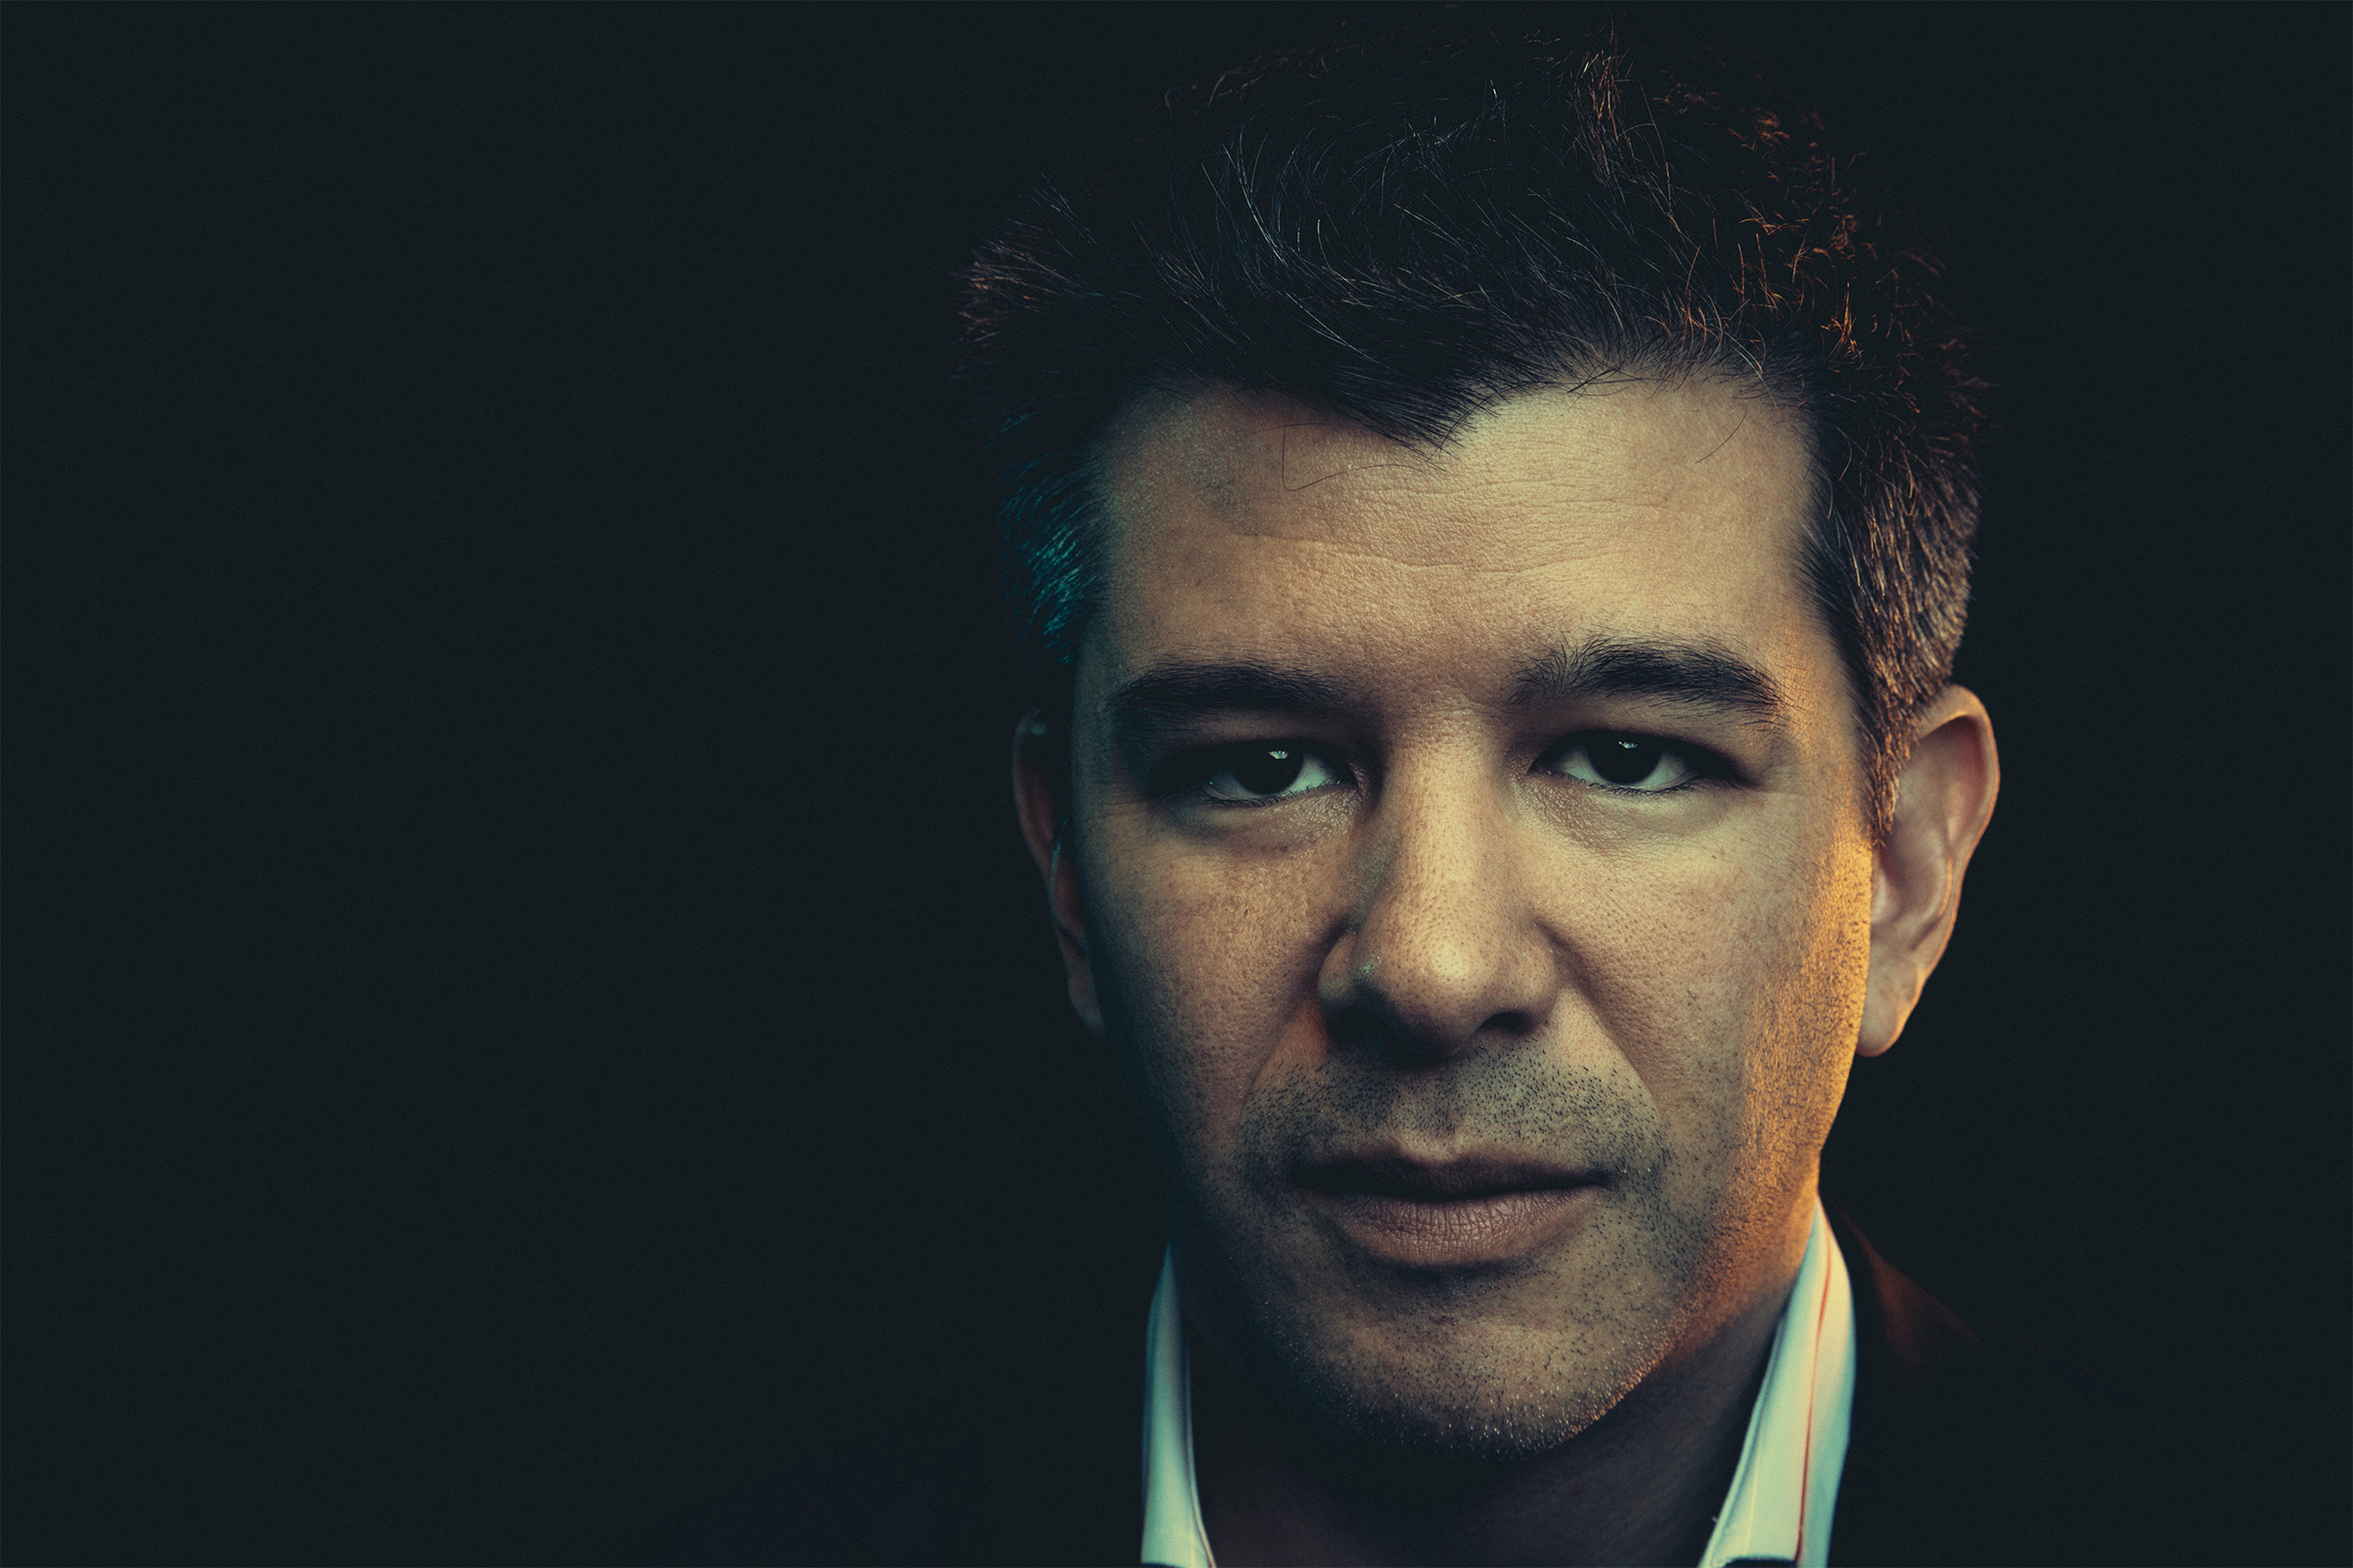 Uber CEO Travis Kalanick appears in Washington, DC on November 6, 2013.